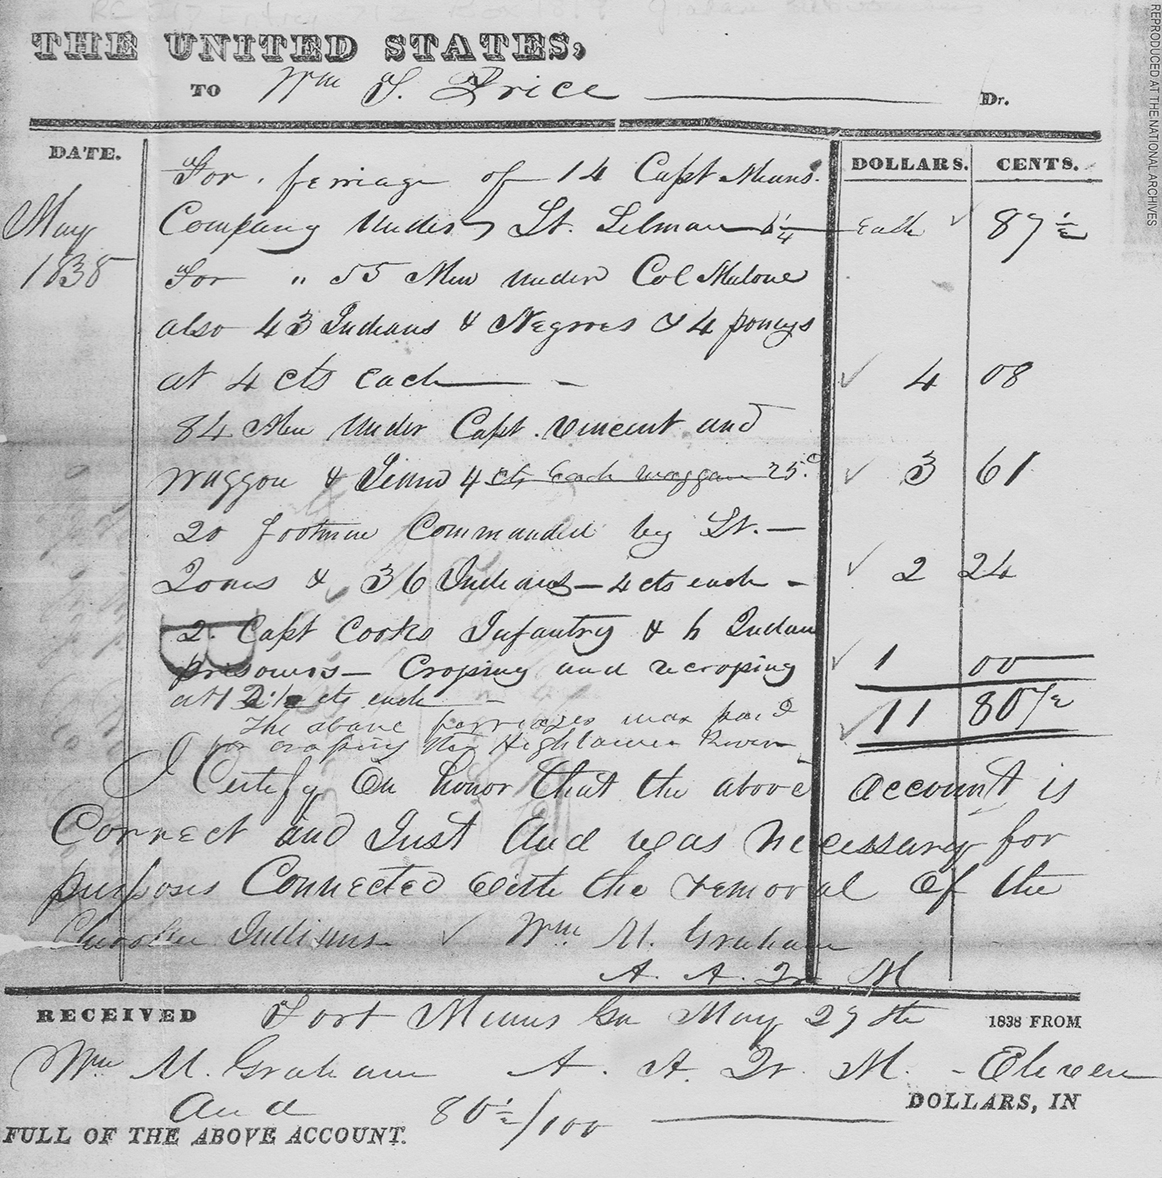 WilliamGrahamvoucher139paymentforferriagetoWilliamT.Price,May29,1838. RG217,Entry712,Box1819,NationalArchives. Image provided by Sarah H. Hill.